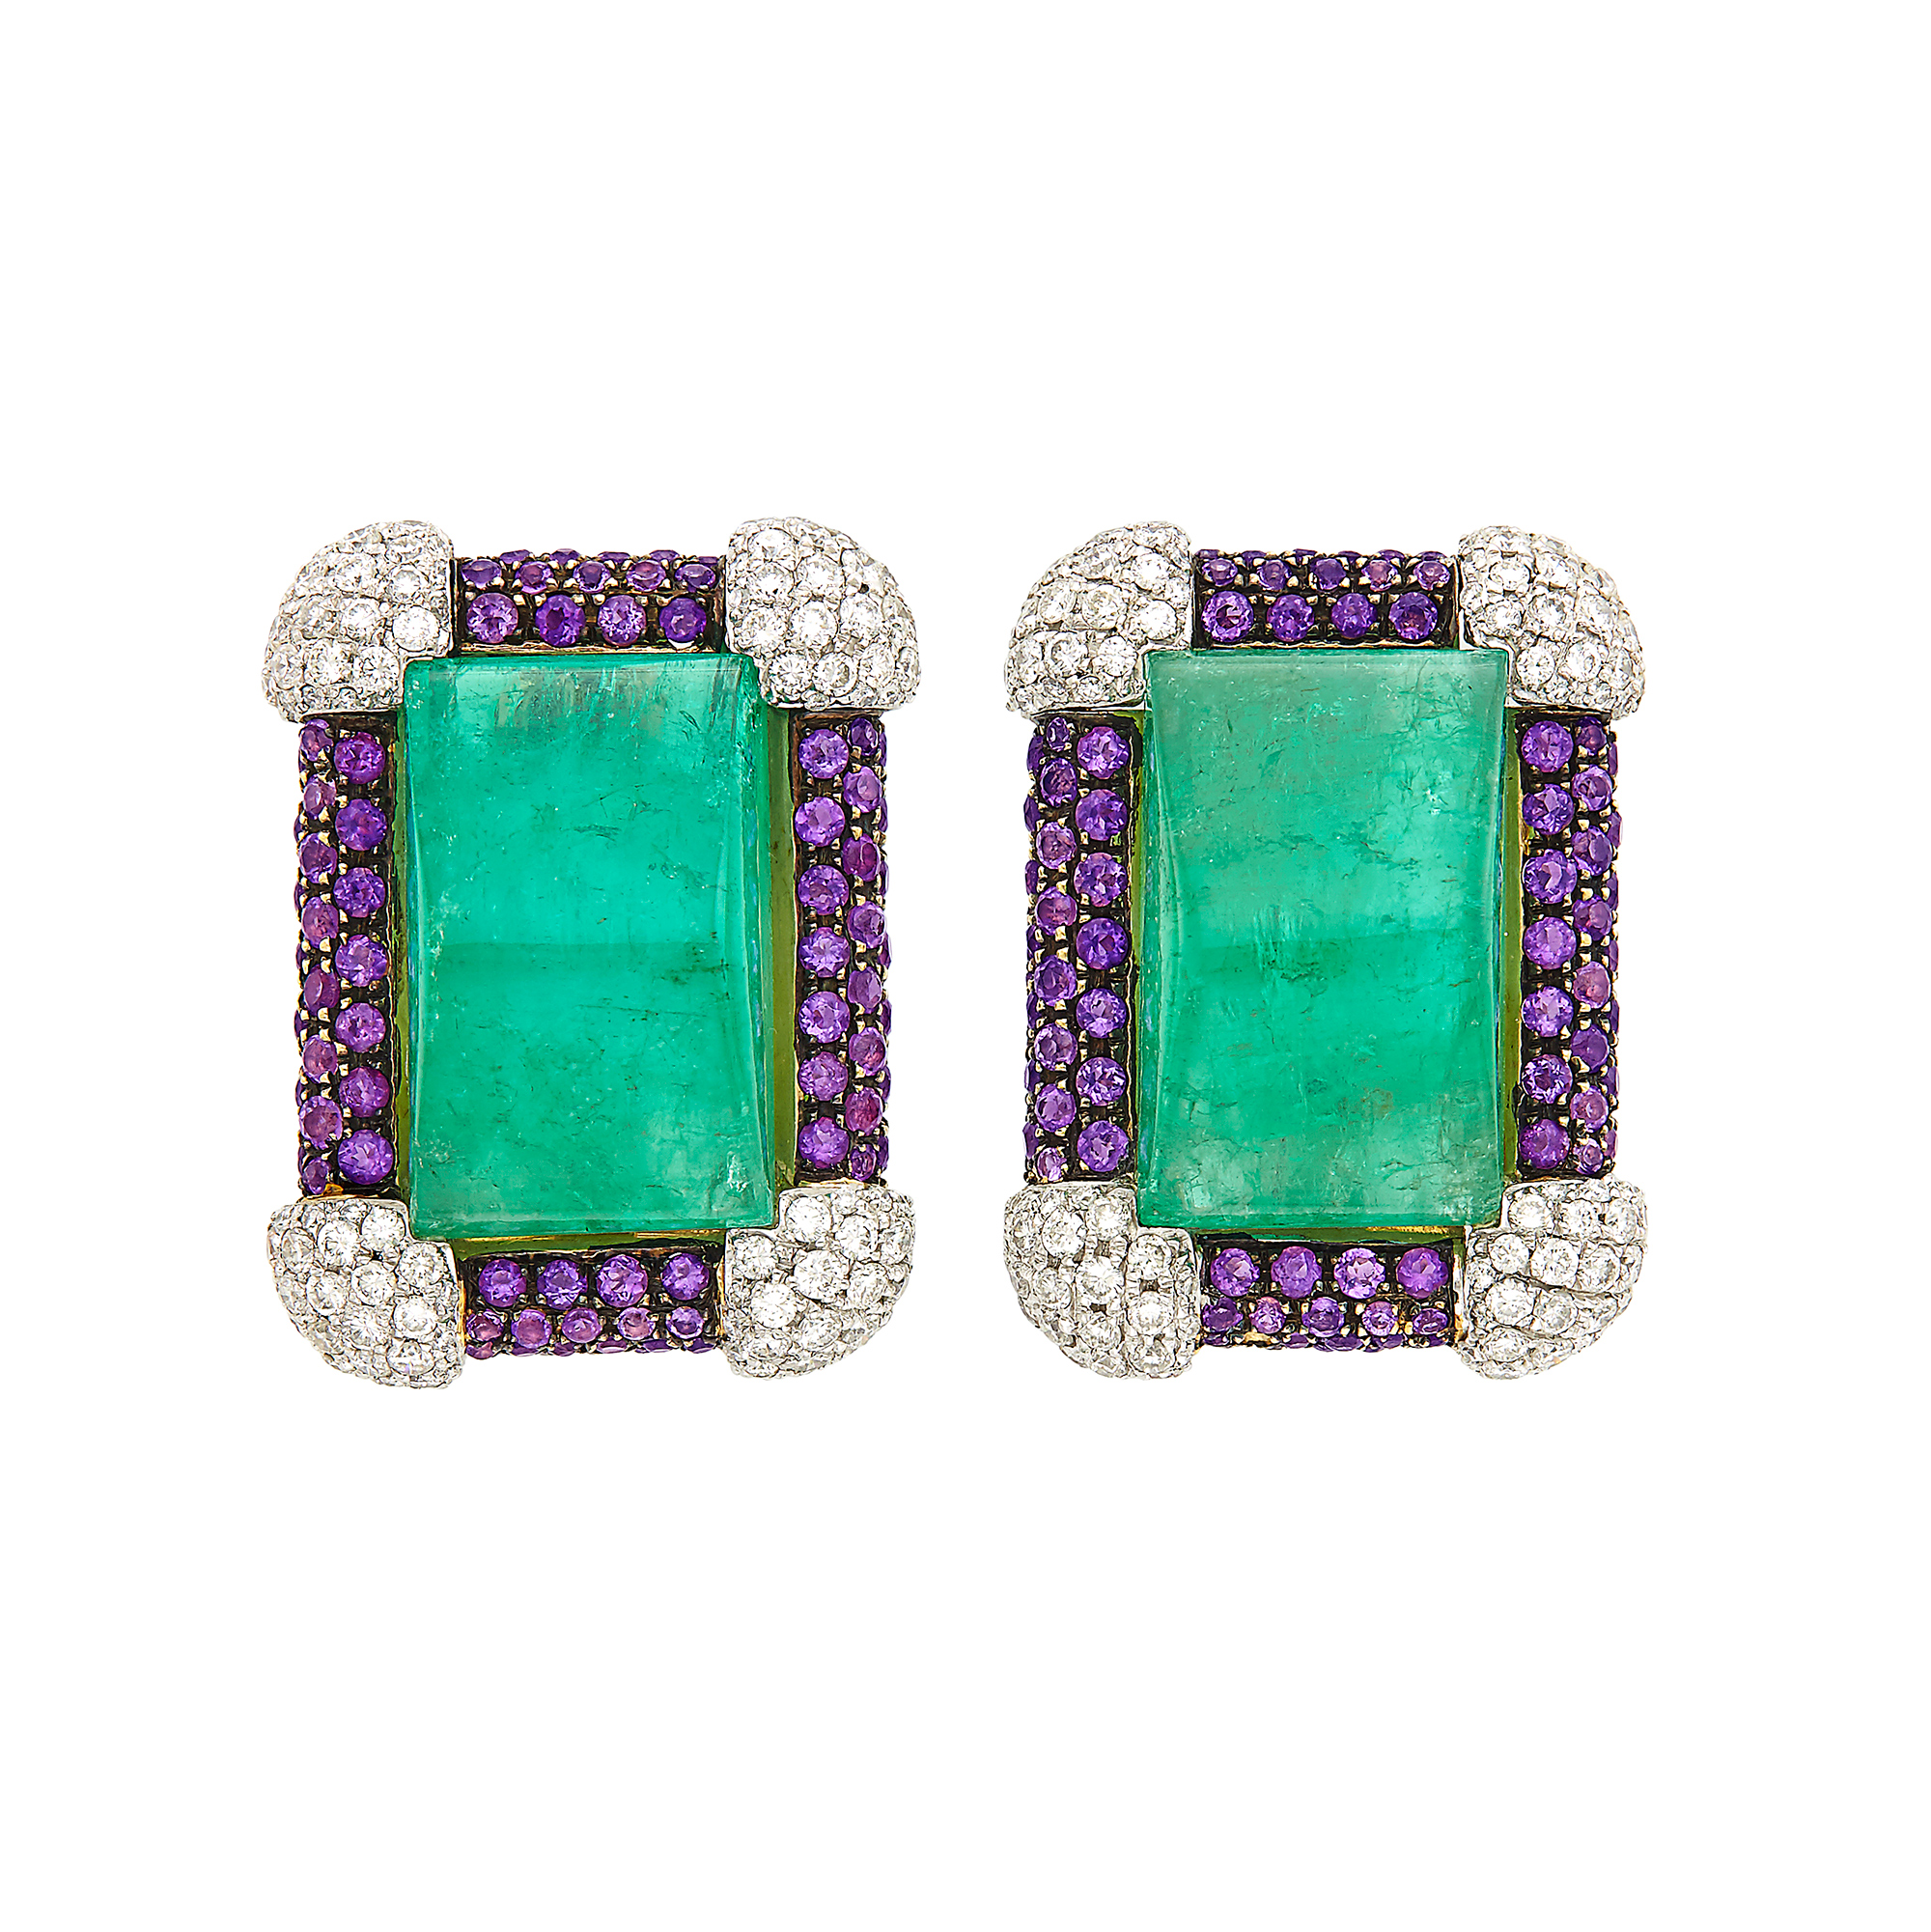 Lot image - Pair of Gold, Platinum, Cabochon Emerald, Amethyst and Diamond Earclips, Michele della Valle